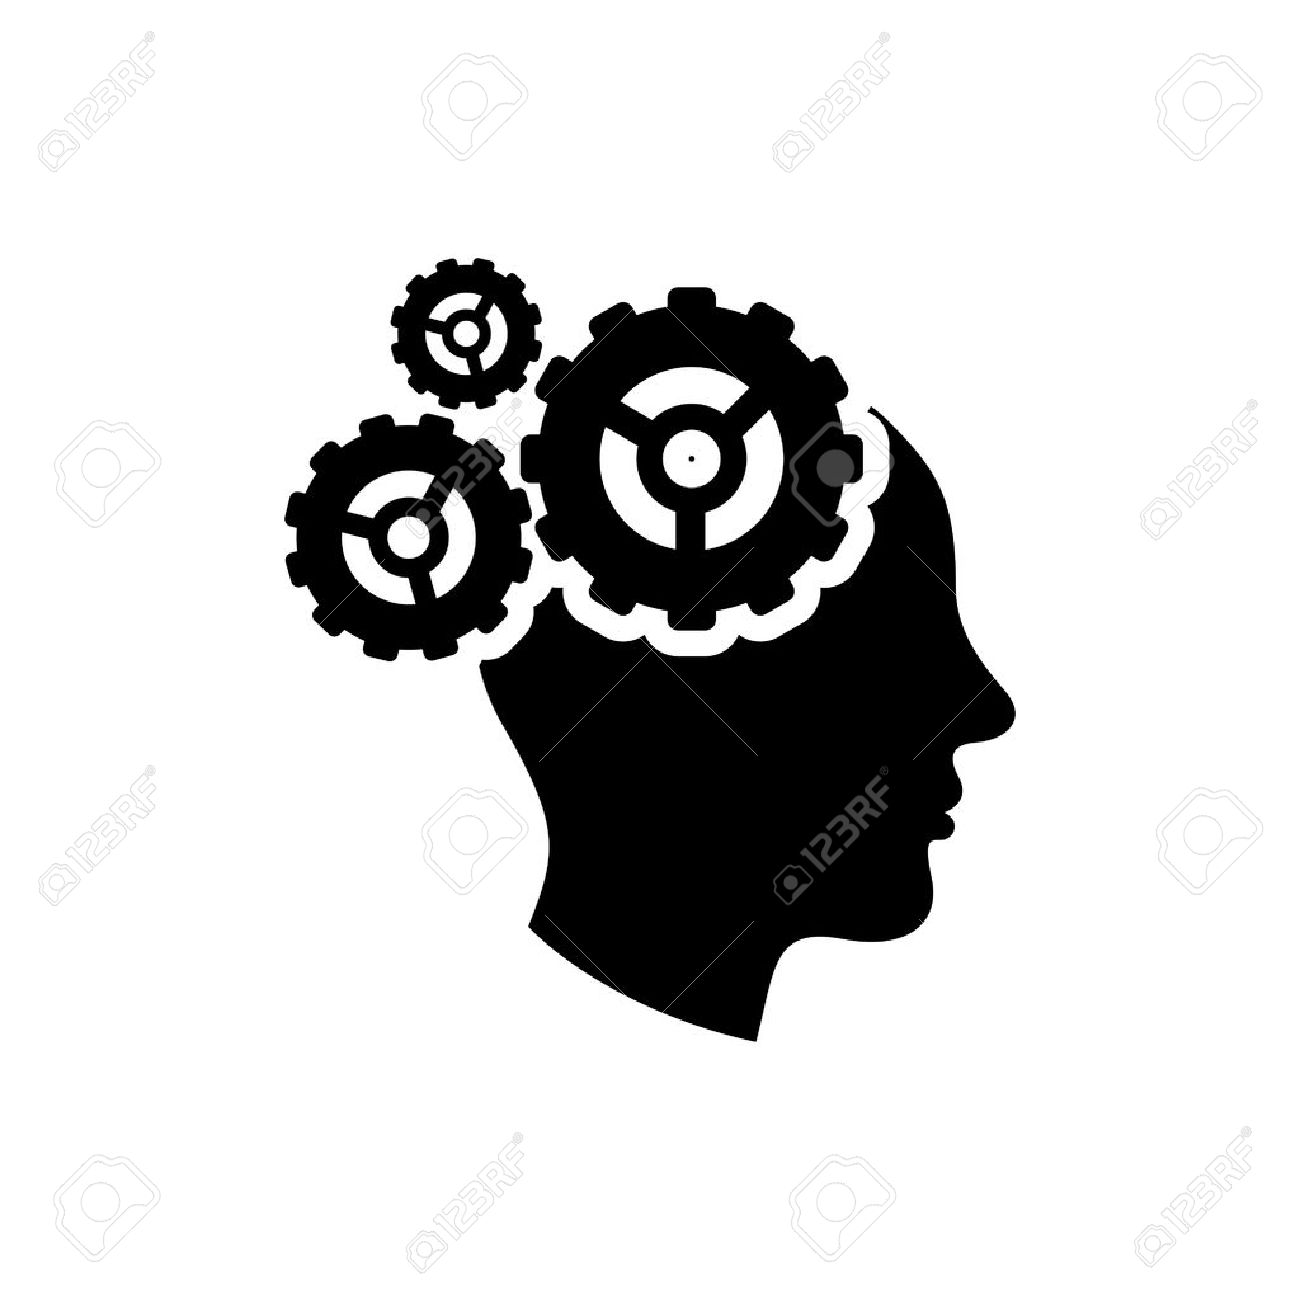 Gear brain icon royalty free cliparts vectors and stock gear brain icon stock vector 45814879 biocorpaavc Images